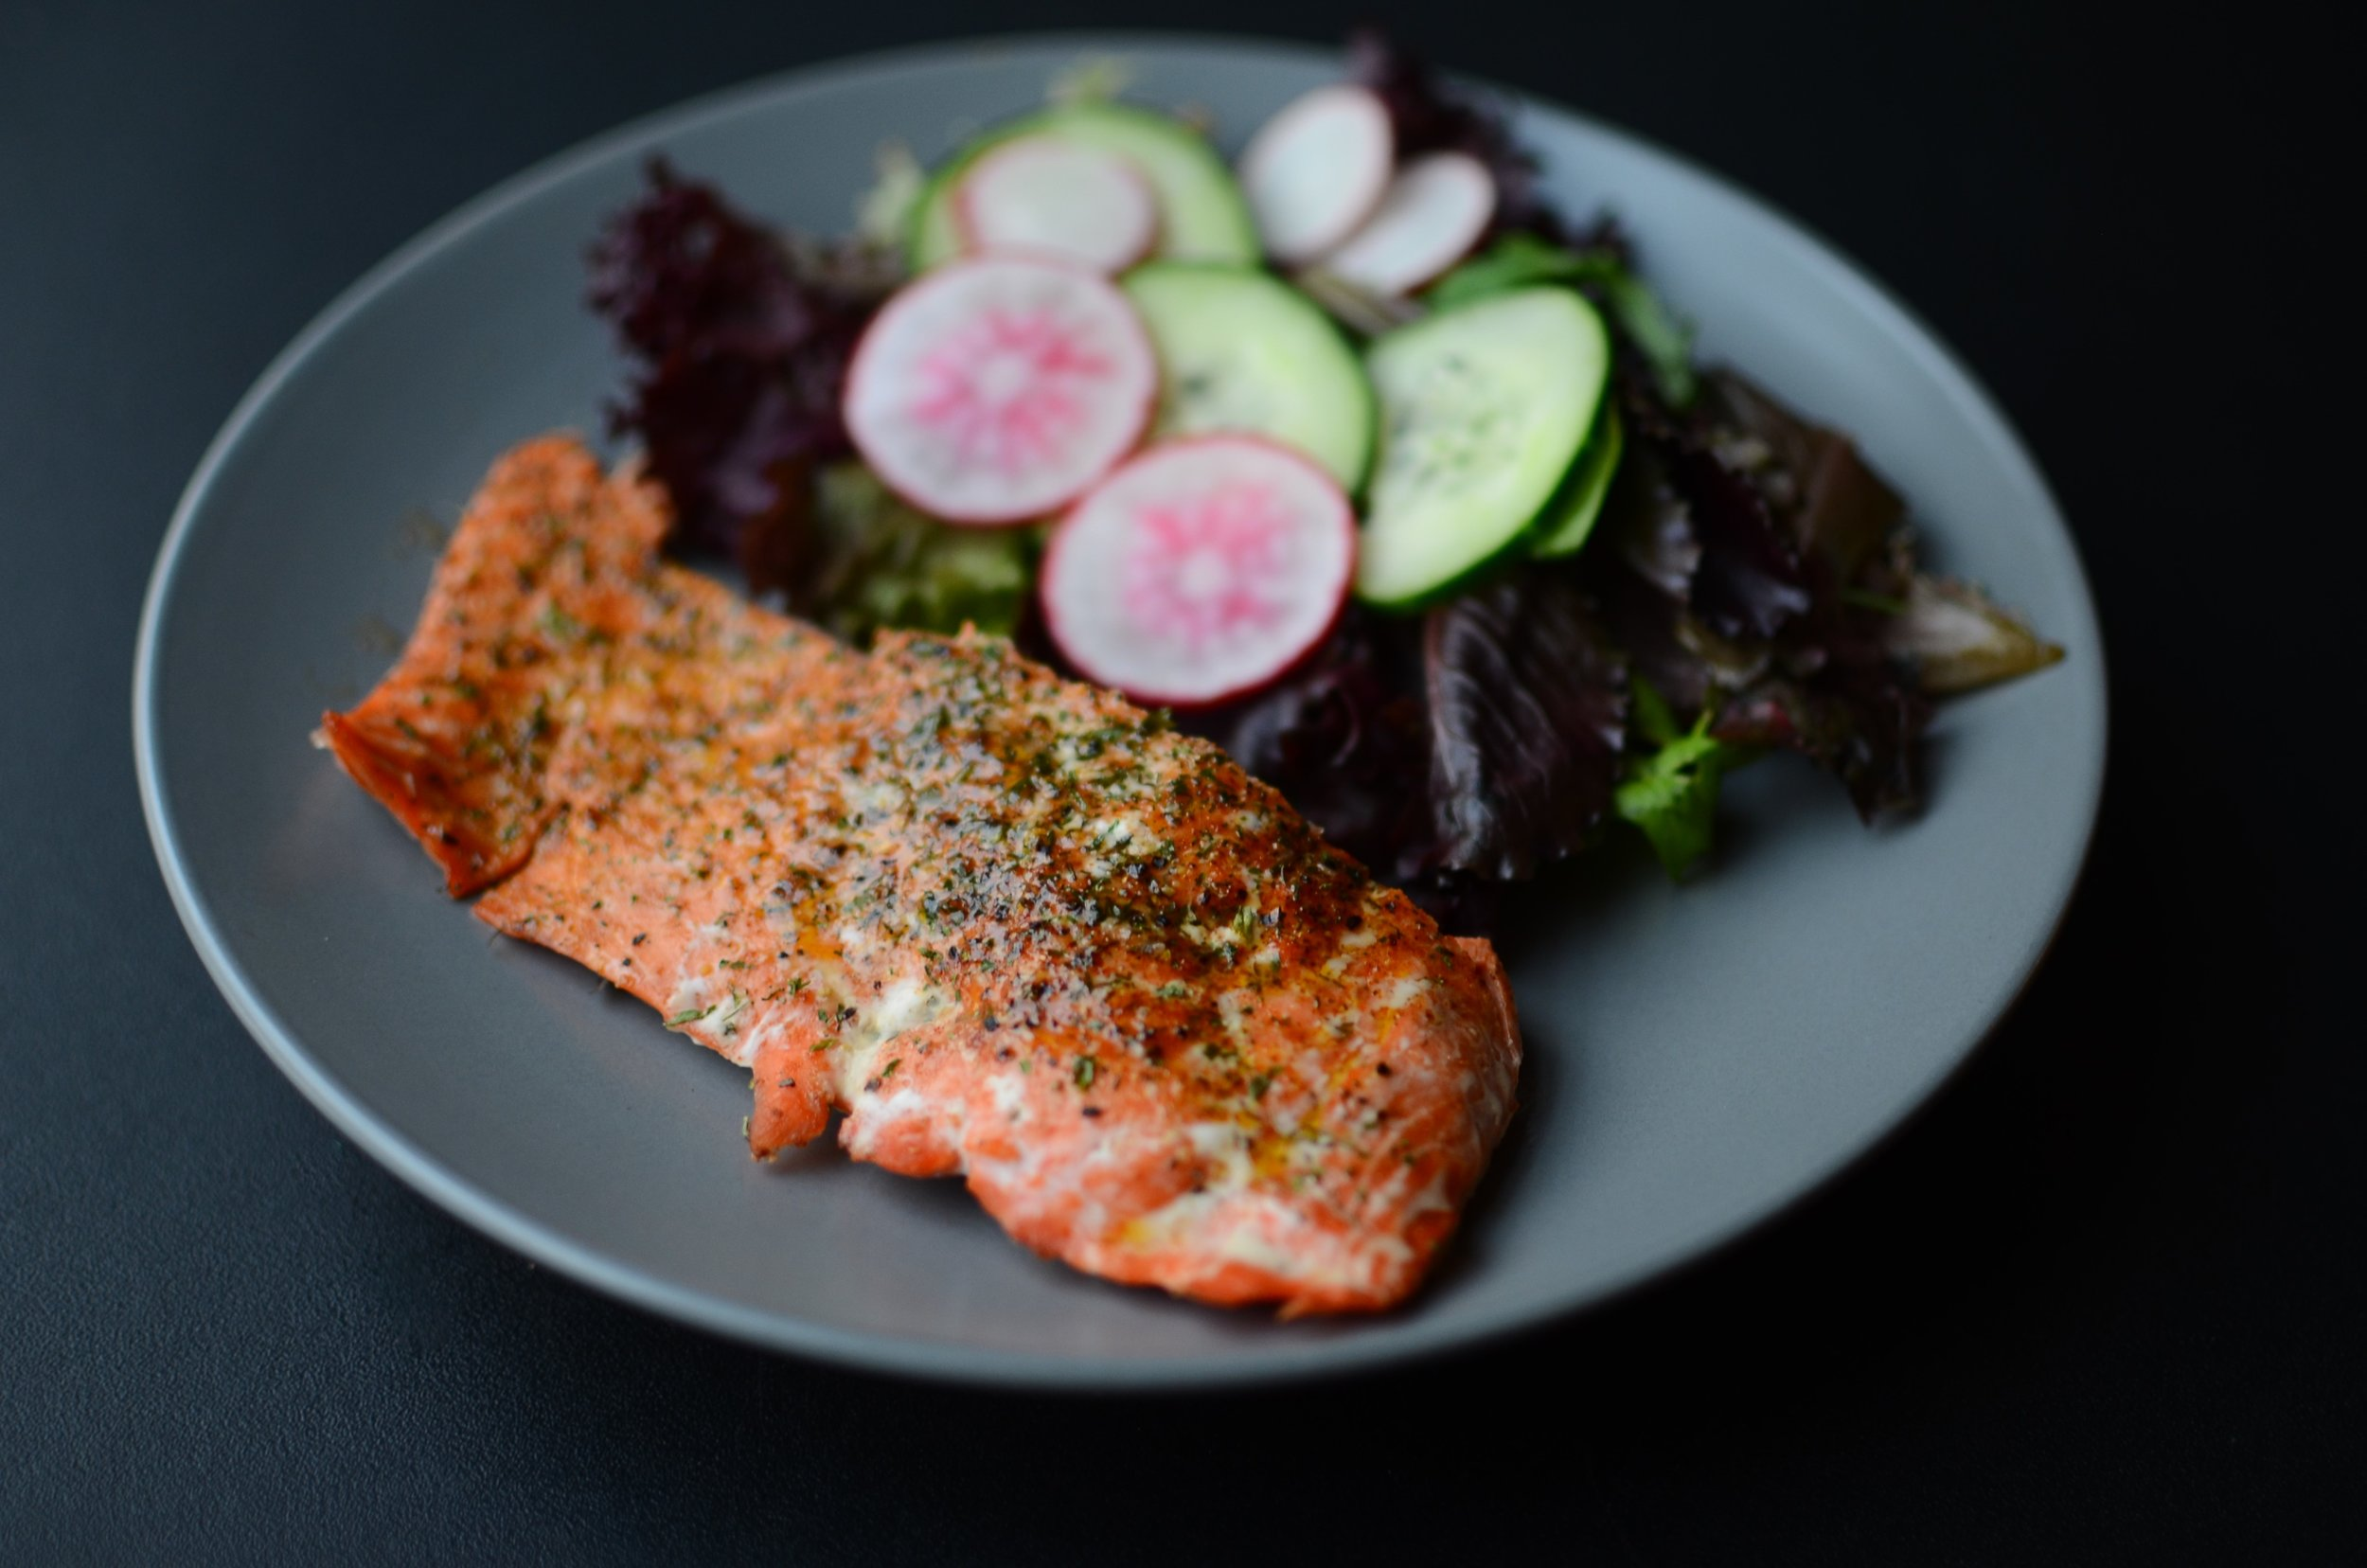 ButterYum - Captain Jack's Salmon Dry Rub recipe. oven baked salmon with dry rub seasoning recipe. how to bake sockeye salmon in the oven. how to roast sockeye salmon.  salmon dry rub.  salmon rub recipe.  dry rub for salmon.  rub for salmon.  dry rub salmon.  salmon seasoning rub.  salmon rubs.  salmon rub recipe.  rub for salmon in oven.  salmon rub baked.  simple salmon rub.  salmon rub seasoning.  salmon dry rub seasoning.  rubs for salmon.  salmon spice rub.  grilled salmon rub. salmon rub.  salmon rub recipe.  salmon dry rub recipe.